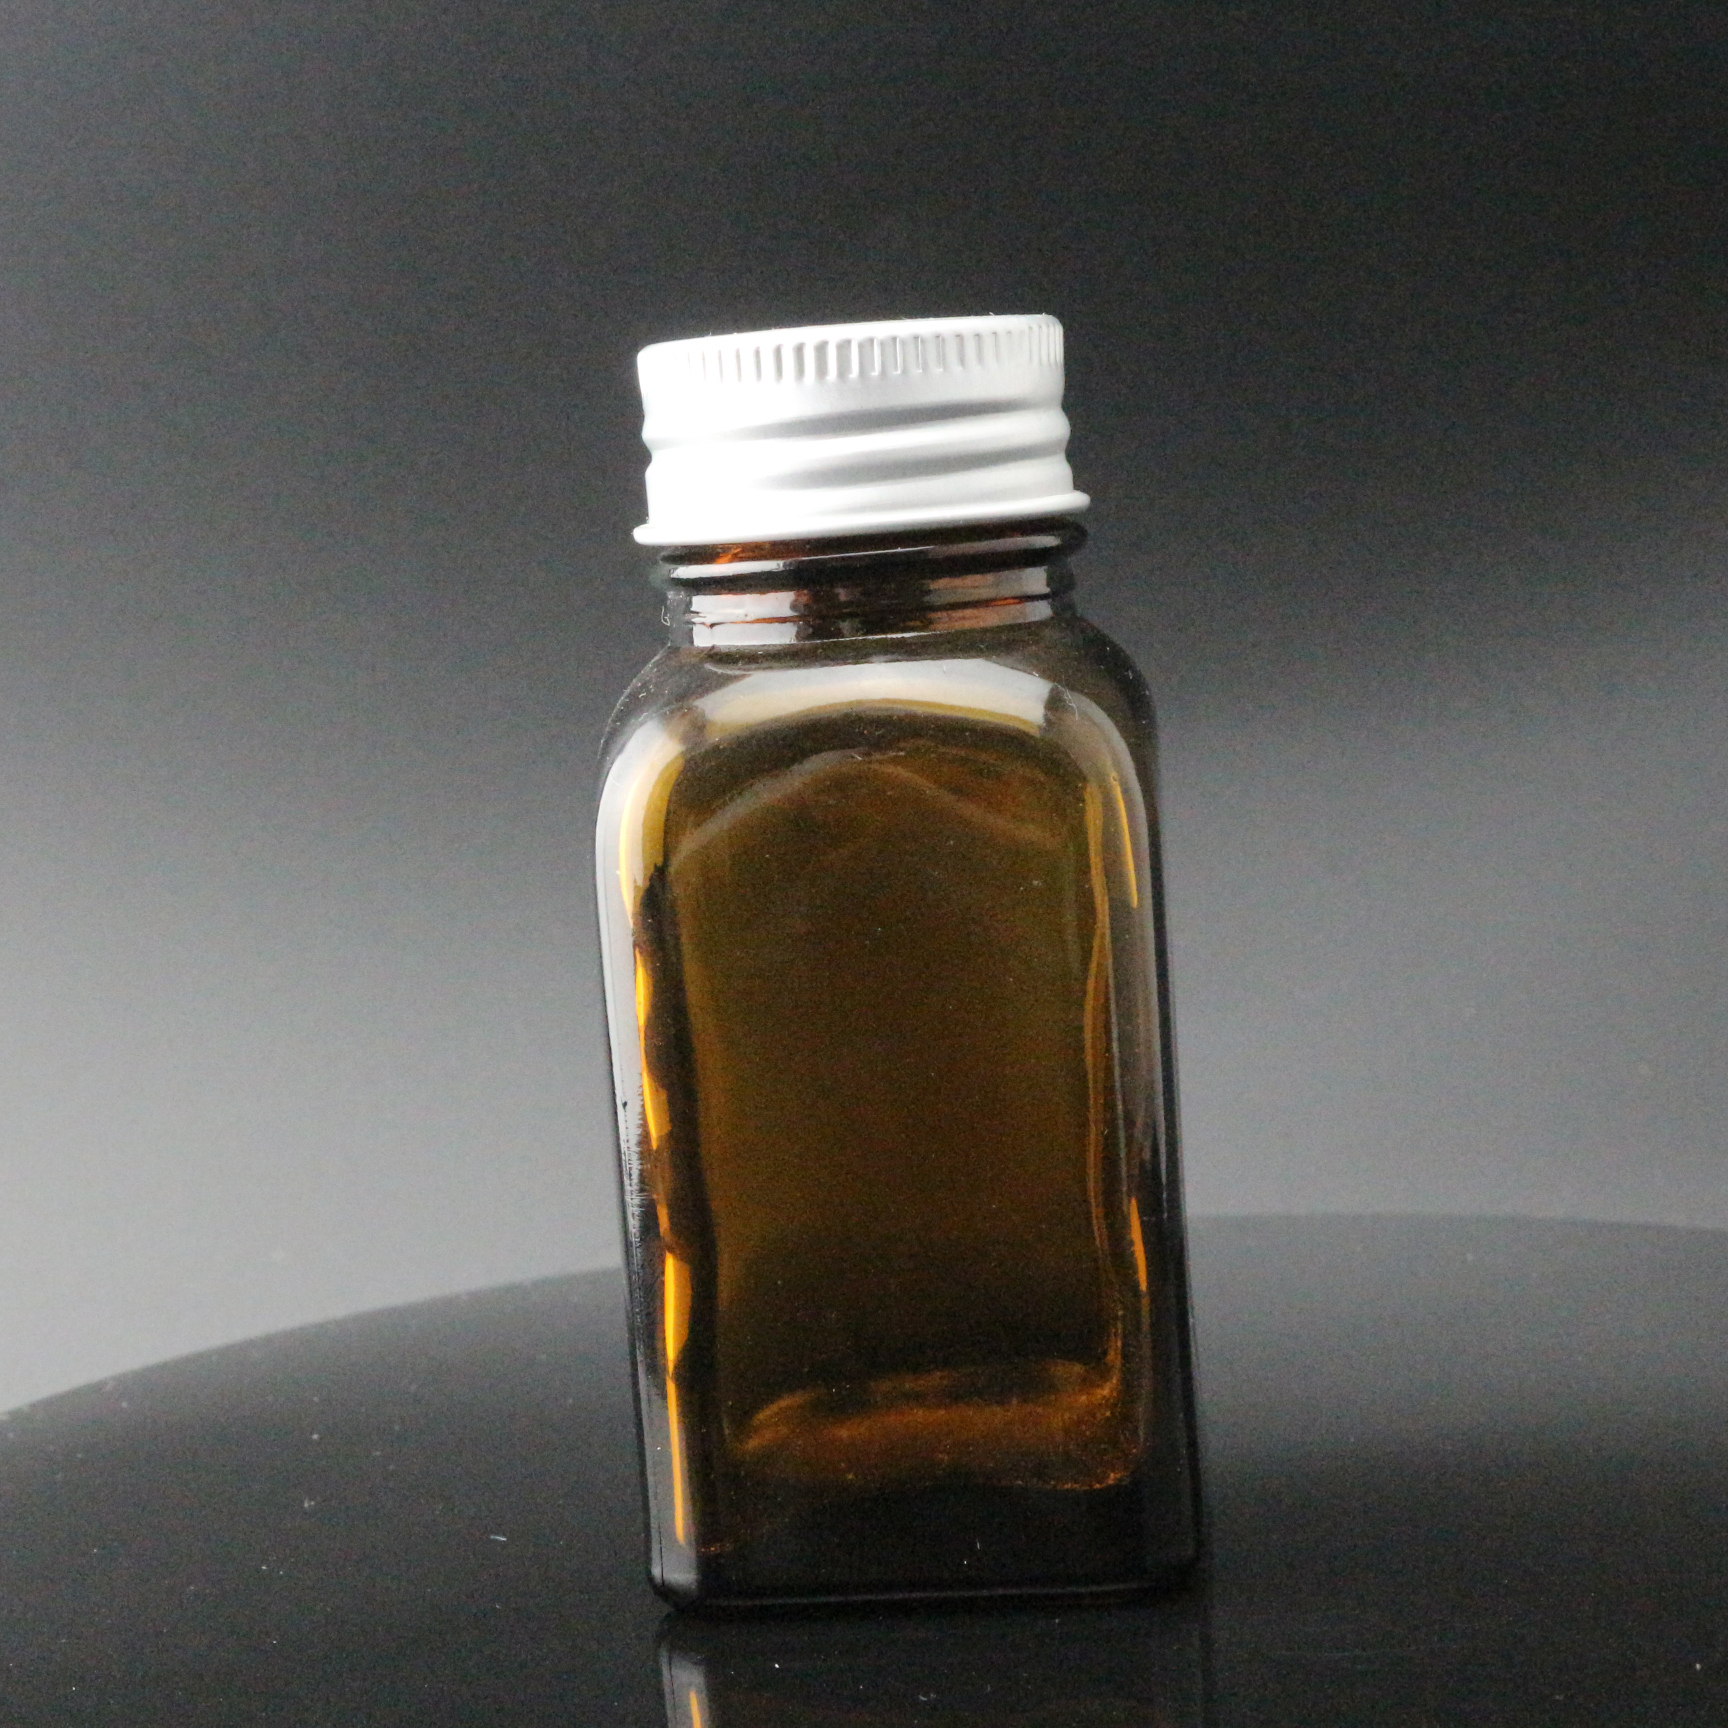 1oz 2oz 4oz 6oz 8oz 1/2 oz 12oz 16oz amber french square glass bottle with Black Cap